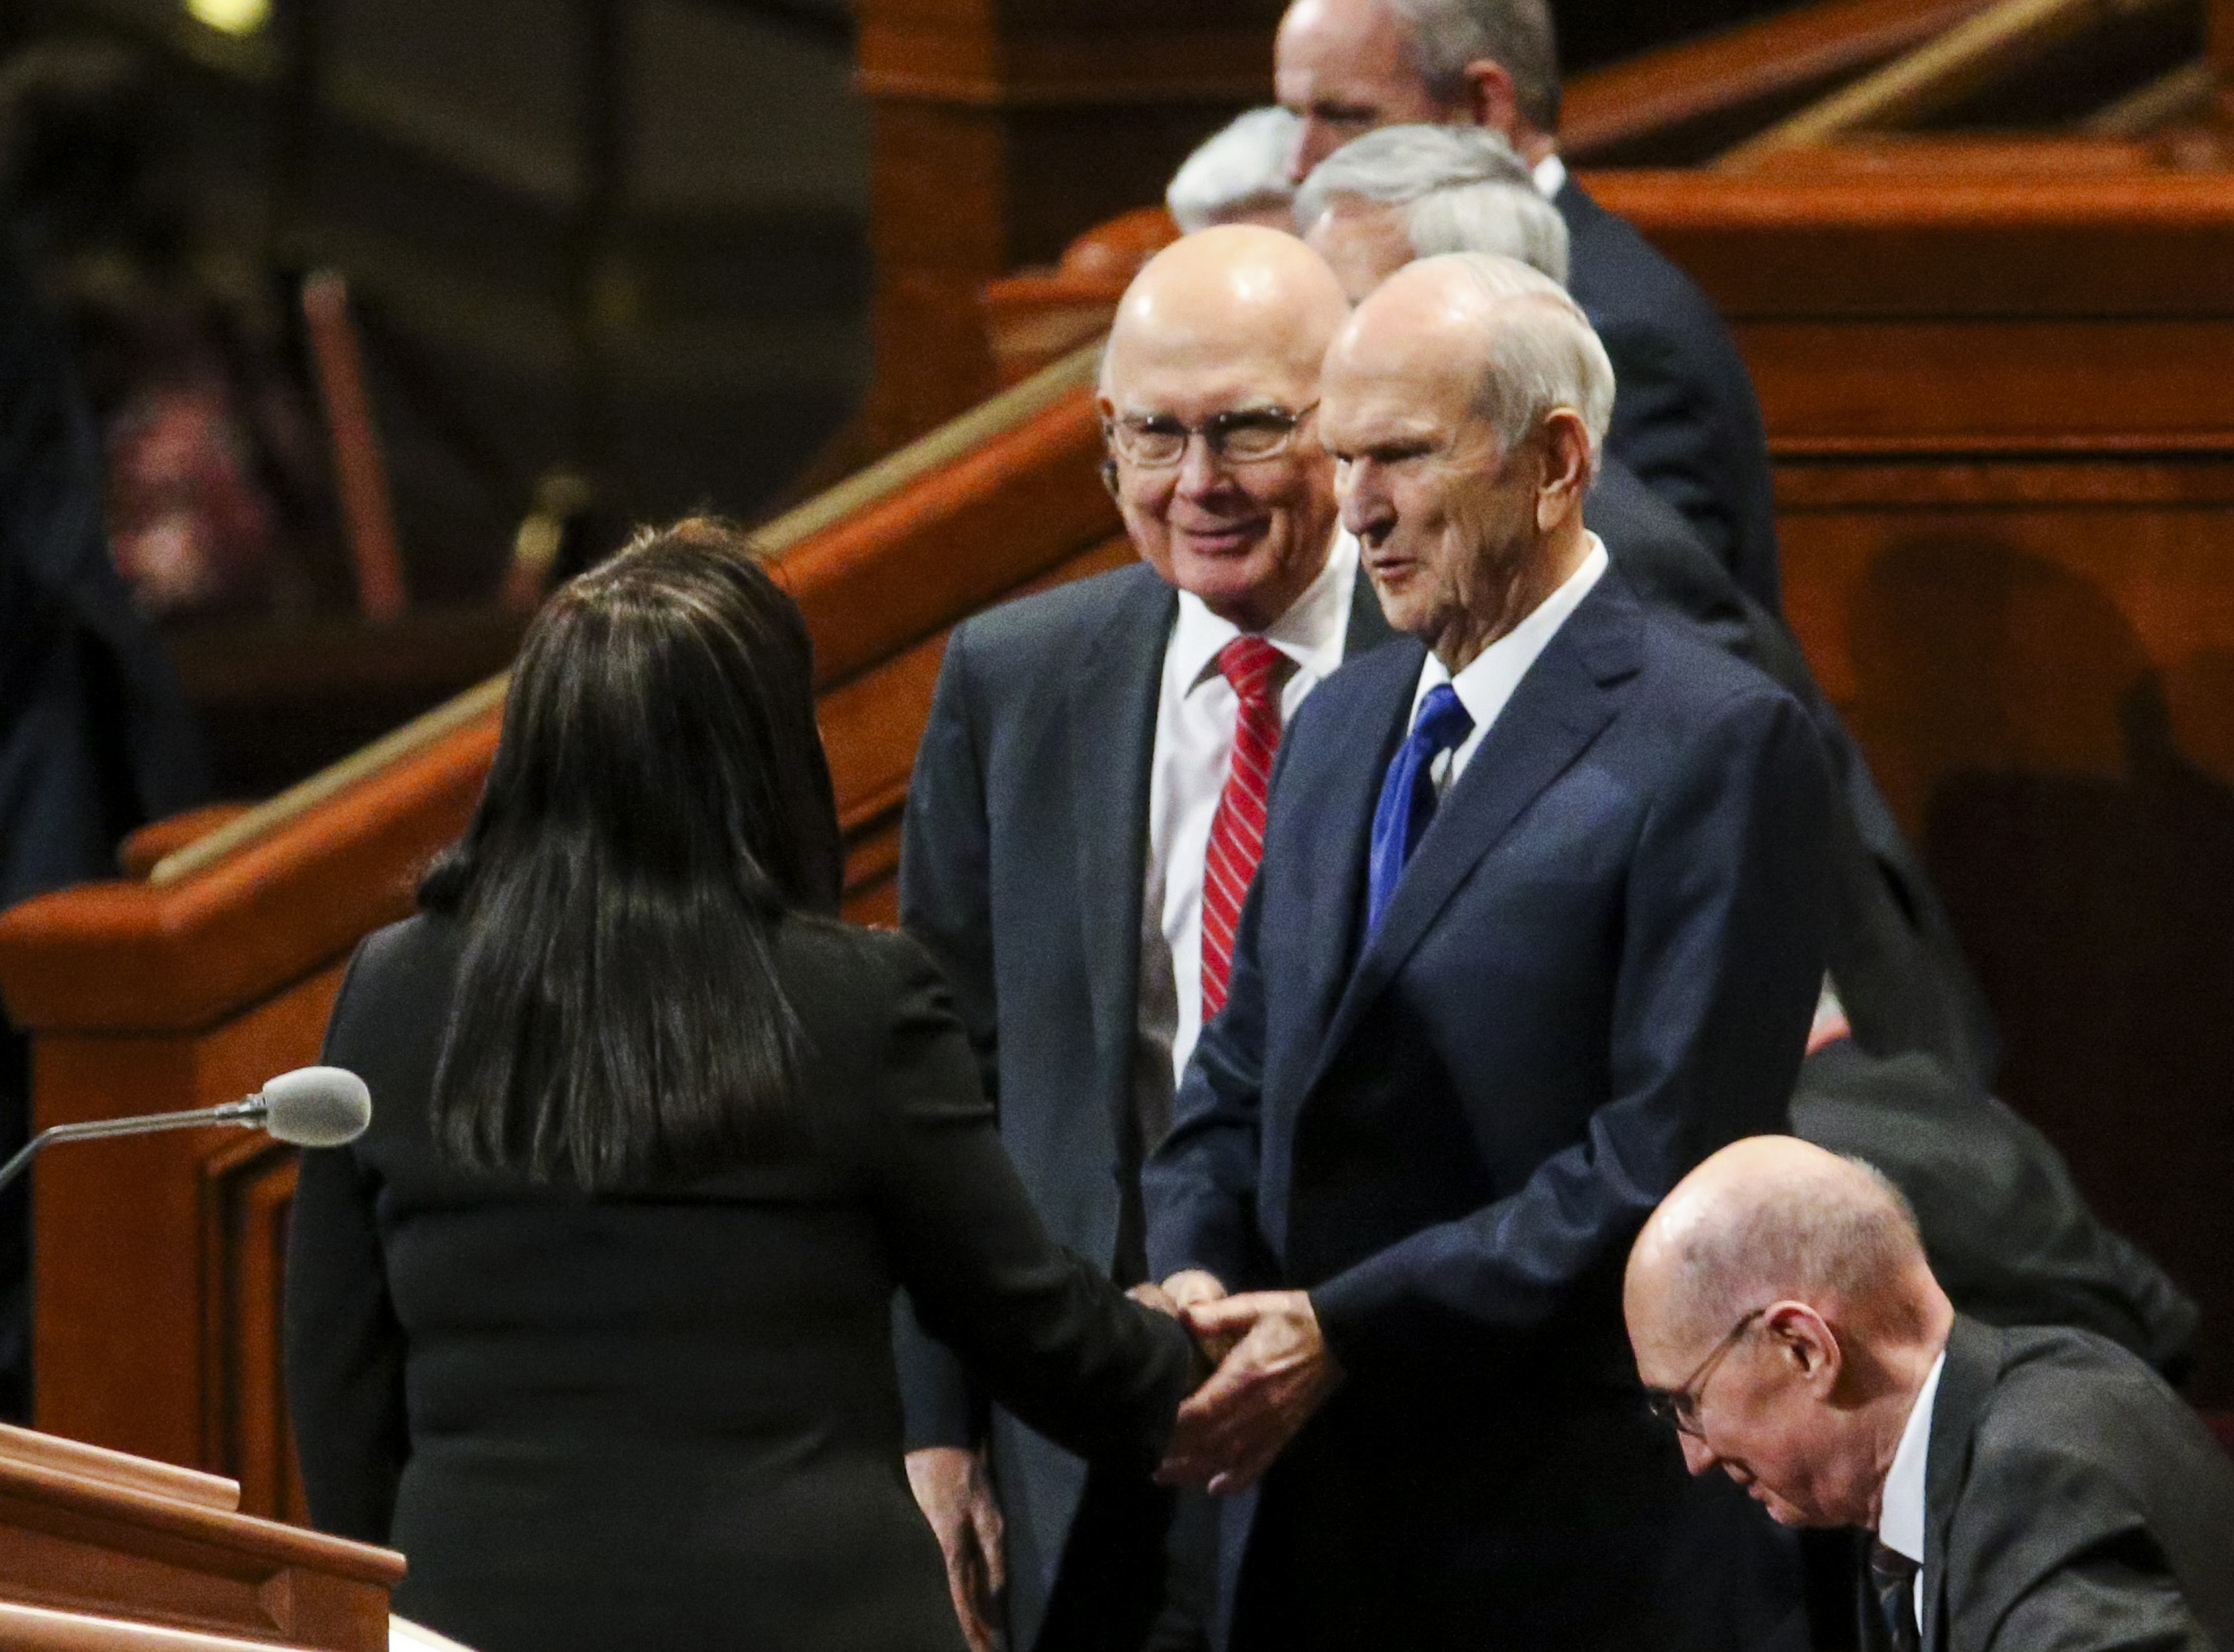 President Russell M. Nelson shakes Carol Costley's hand at the end of the women's session of the 189th Semiannual General Conference of The Church of Jesus Christ of Latter-day Saints, with President Dallin H. Oaks, first counselor in the First Presidency, on the right, at the Conference Center in Salt Lake City on Saturday, Oct. 5, 2019.